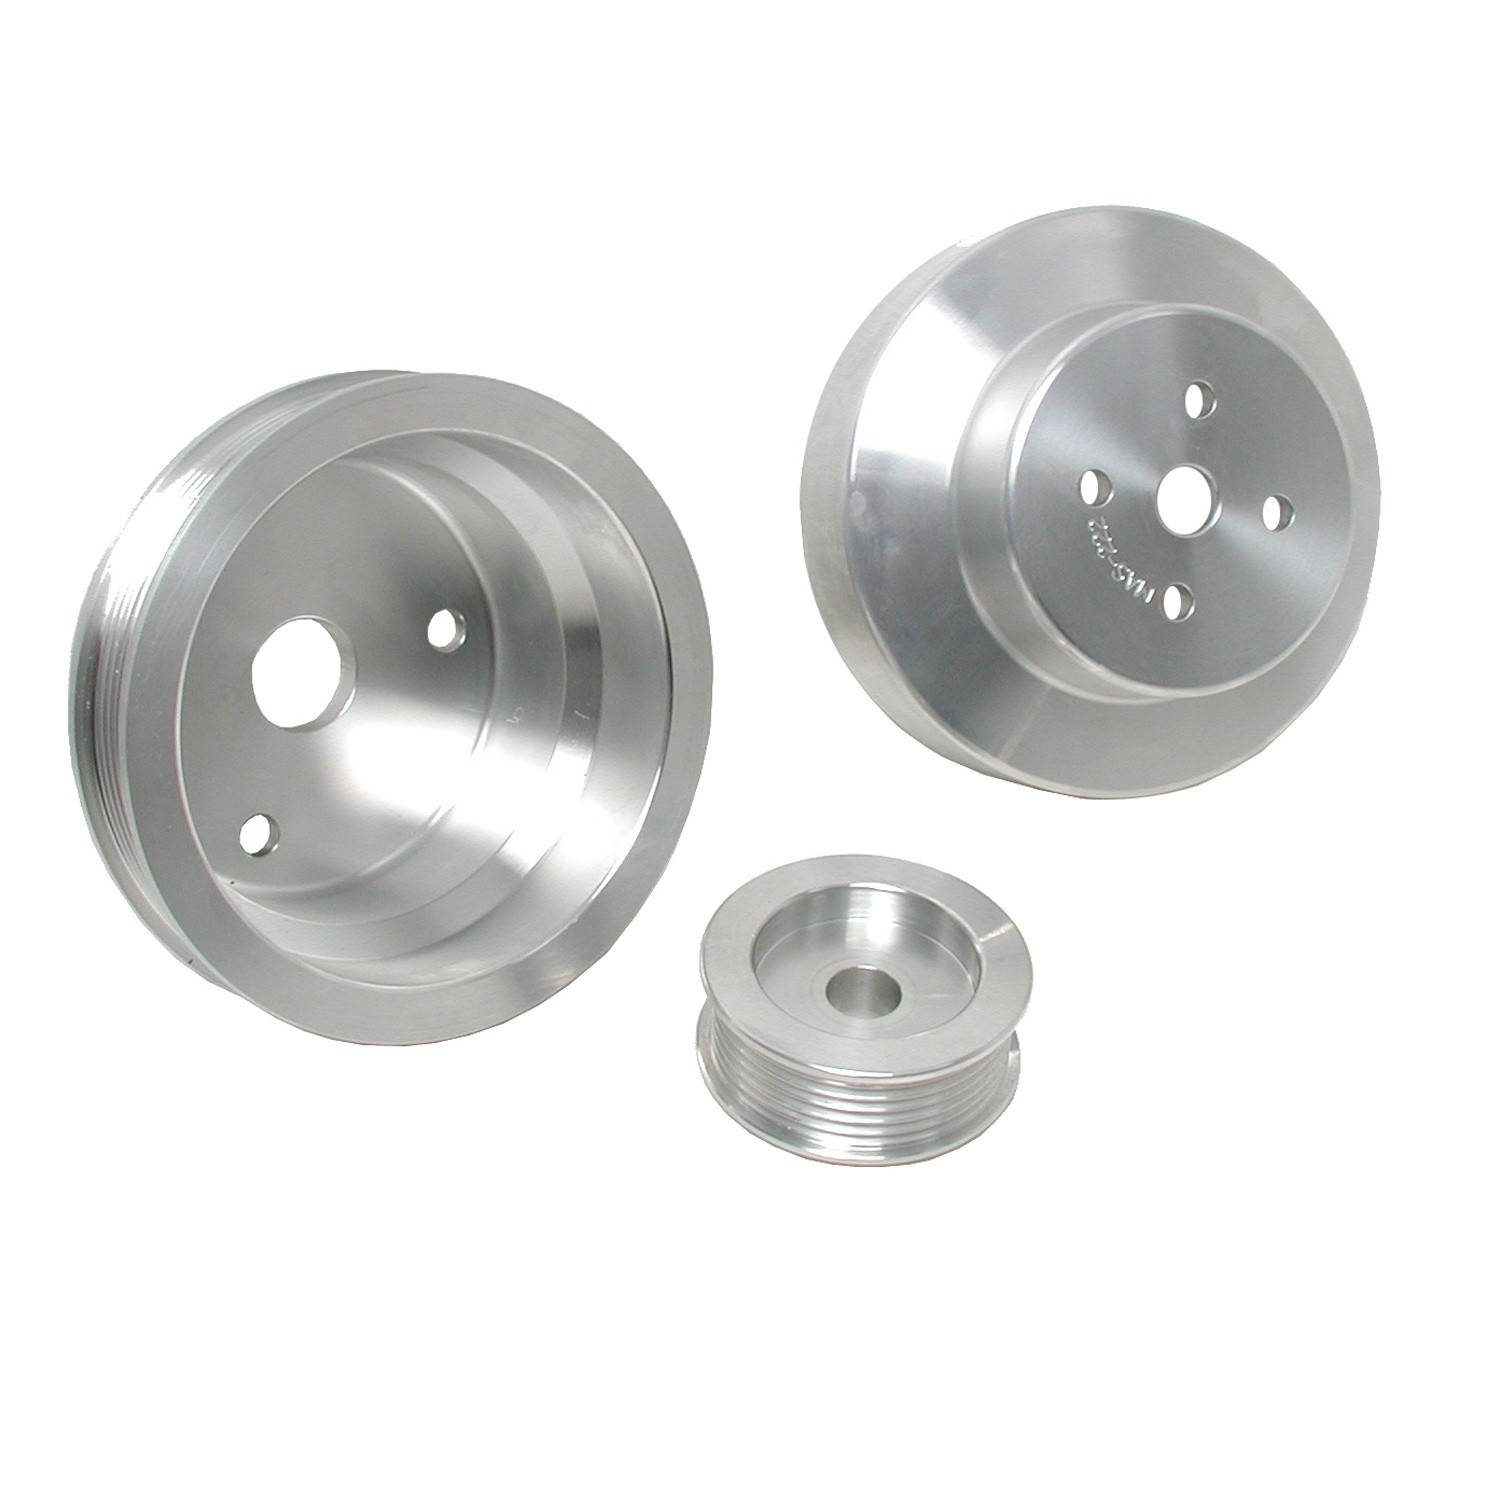 BBK PERFORMANCE PARTS - Power-Plus Series Underdrive Pulley System - XCV 1603